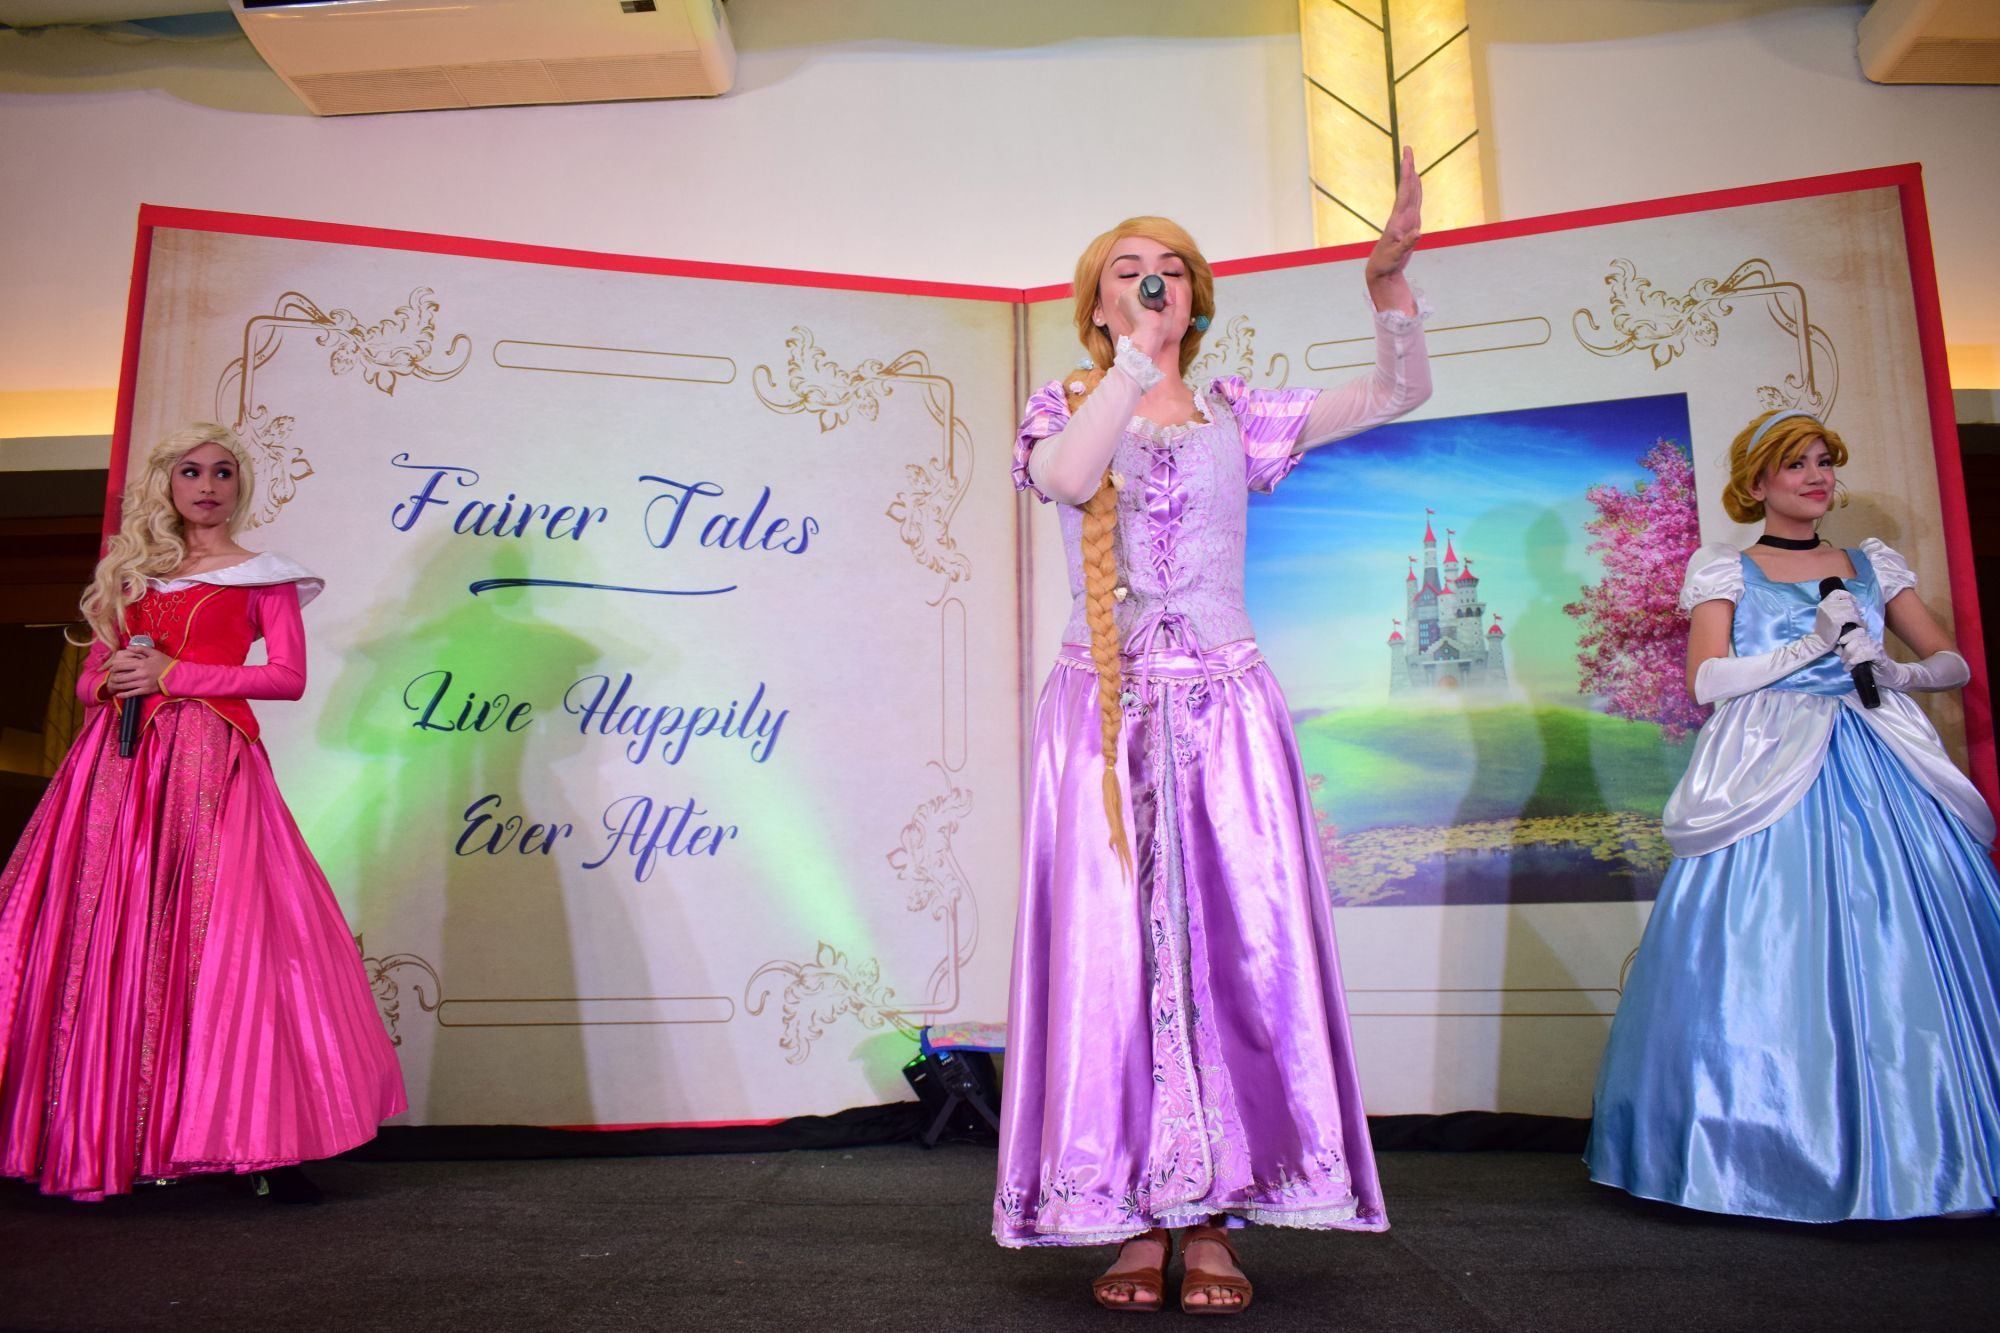 HSBC Philippines Introduces Modern-Day Princesses To Promote Financial Freedom